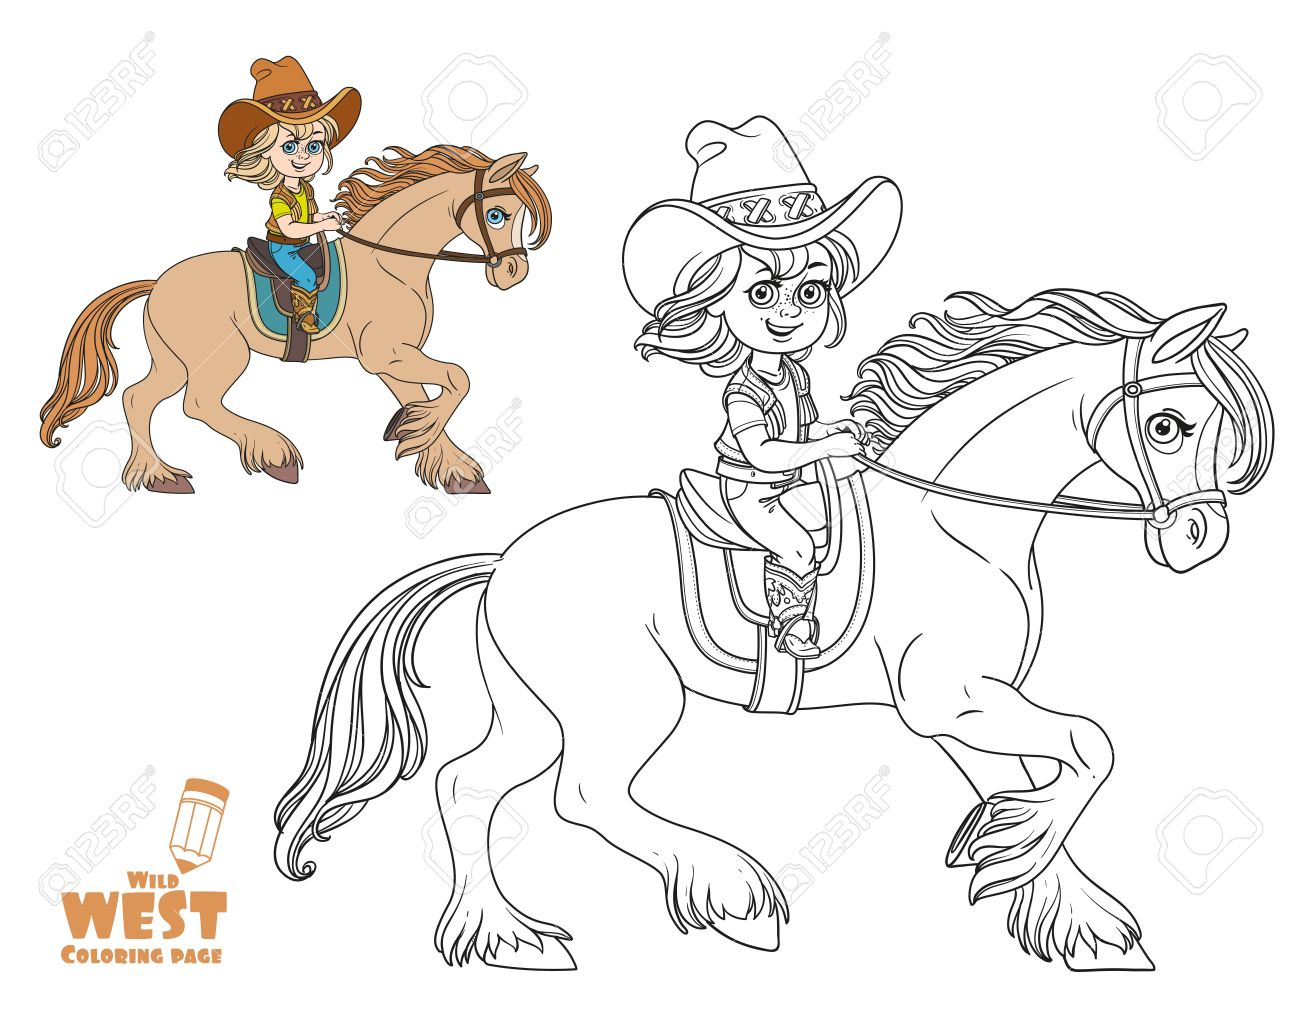 Cute Little Girl In A Cowboy Suit Riding A Horse Coloring Page